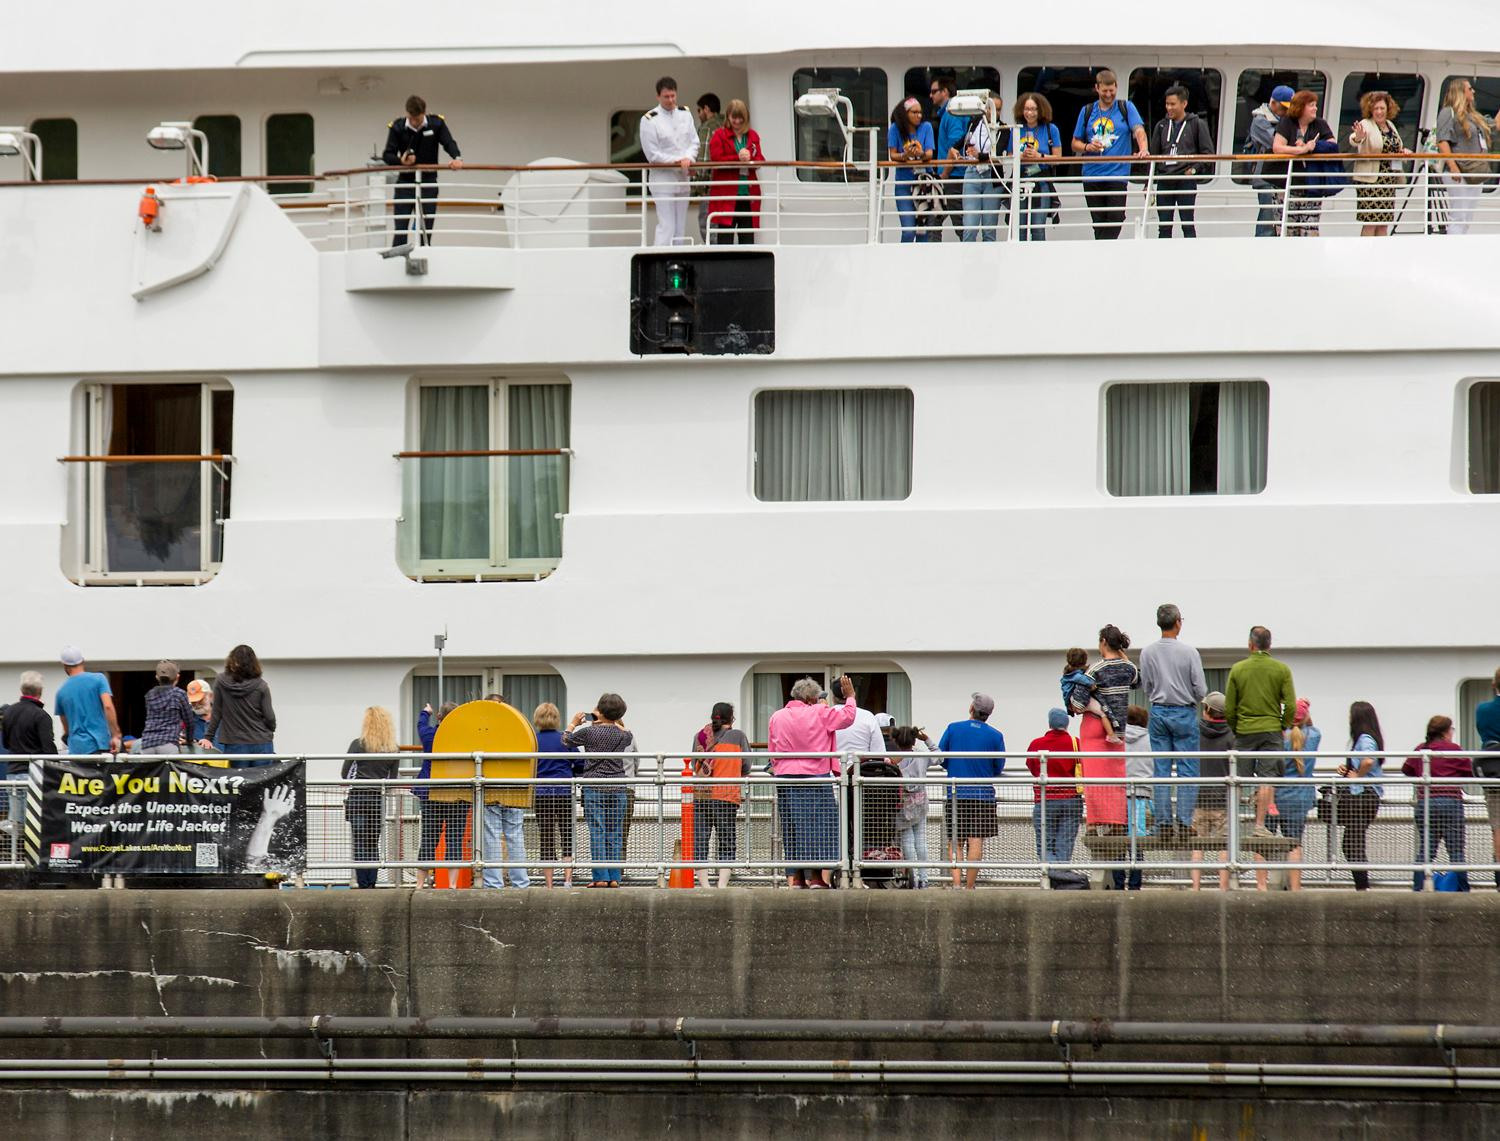 Star Legend became the largest cruise ship ever to transit Chittenden Locks in Ballard and the century-old Lake Washington Ship Canal through Ballard and Fremont, to sail on to Lake Union as part a celebration of Pacific Northwest cruising. Star Legend is owned by Seattle-based Windstar Cruises, a small ship cruise line with a fleet of six ships, and is sailing her inaugural season in Alaska from May to Sept., offering boutique, expedition cruising in luxurious, all-suite accommodations. (Sy Bean / Seattle Refined)